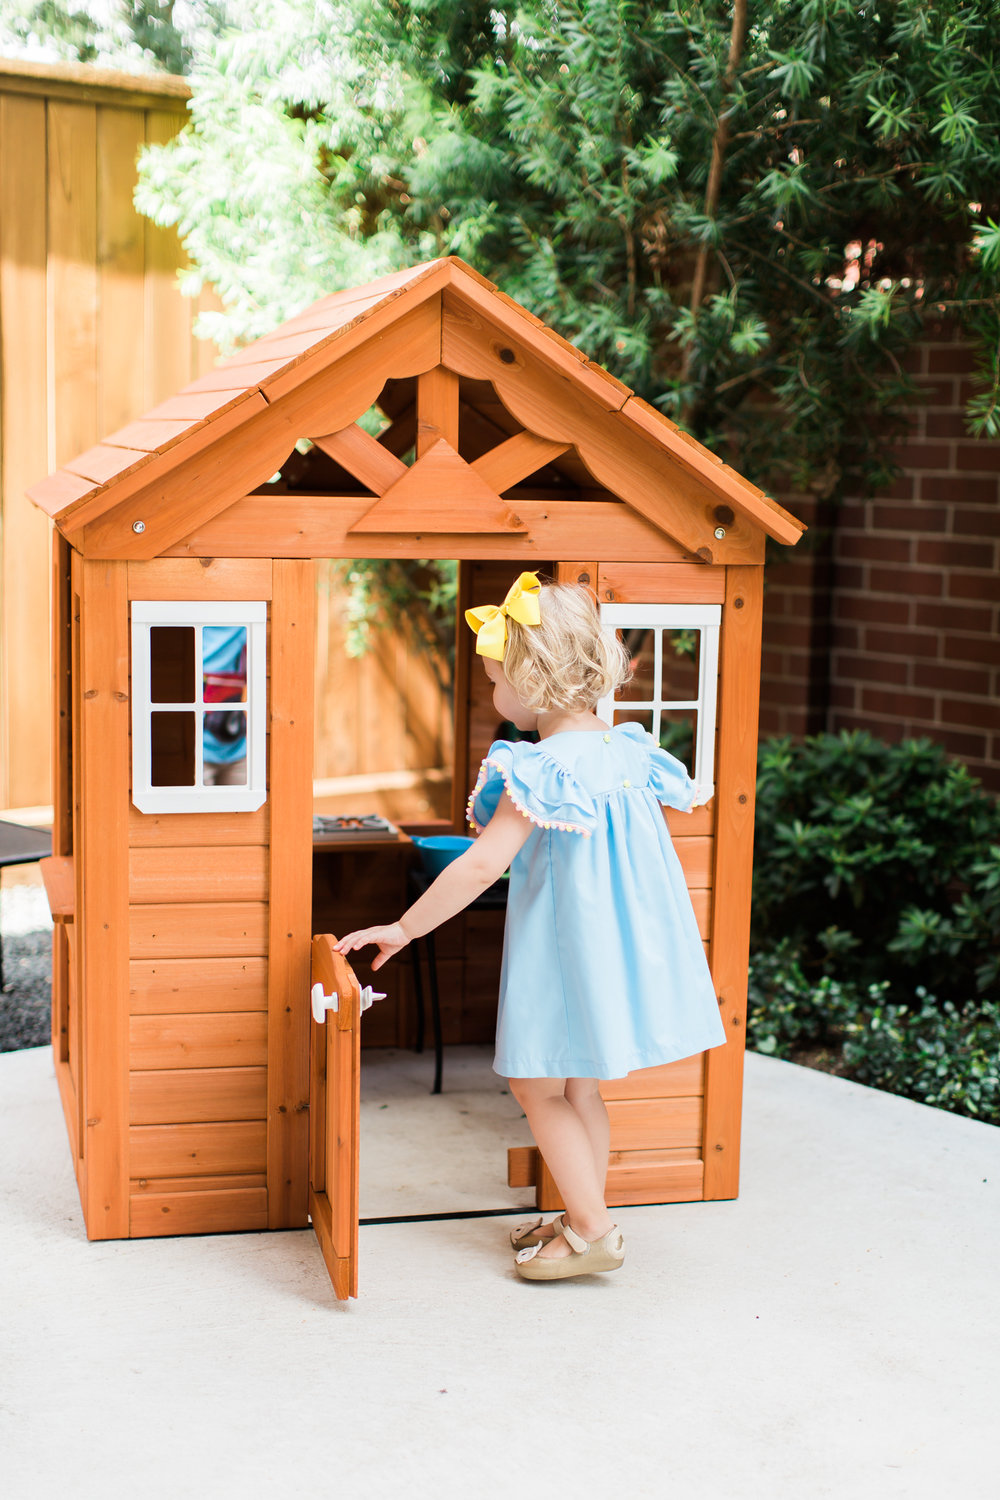 Backyard Discover wooden playhouse - perfect for small backyards. Great for toddlers and little kids!